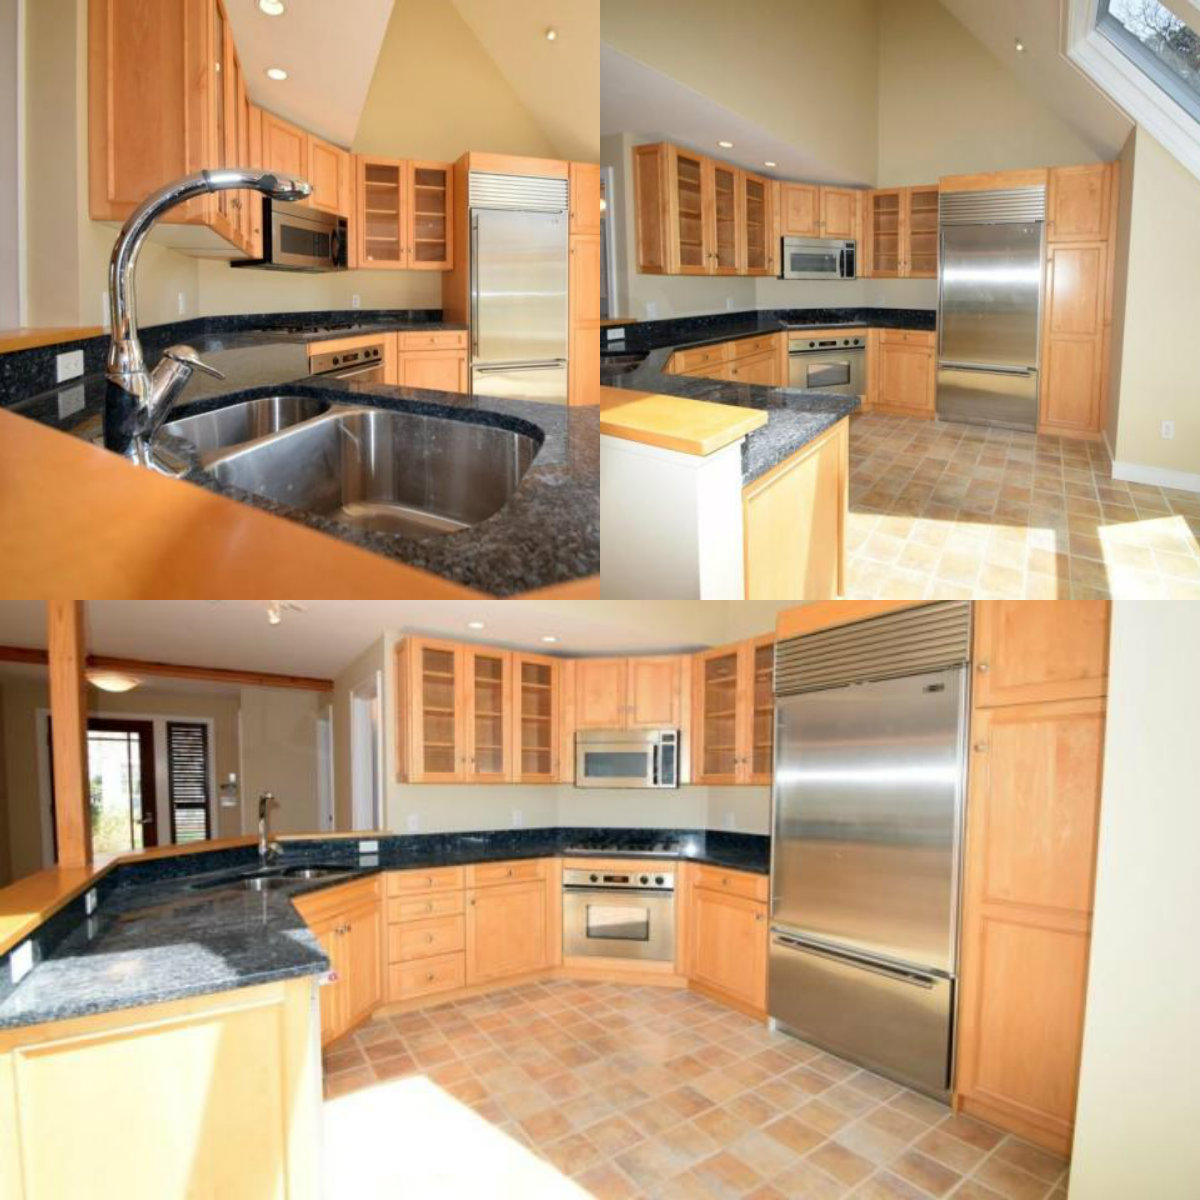 Images of kitchen a 45 Schooner Way in Brewster Cape Cod MA